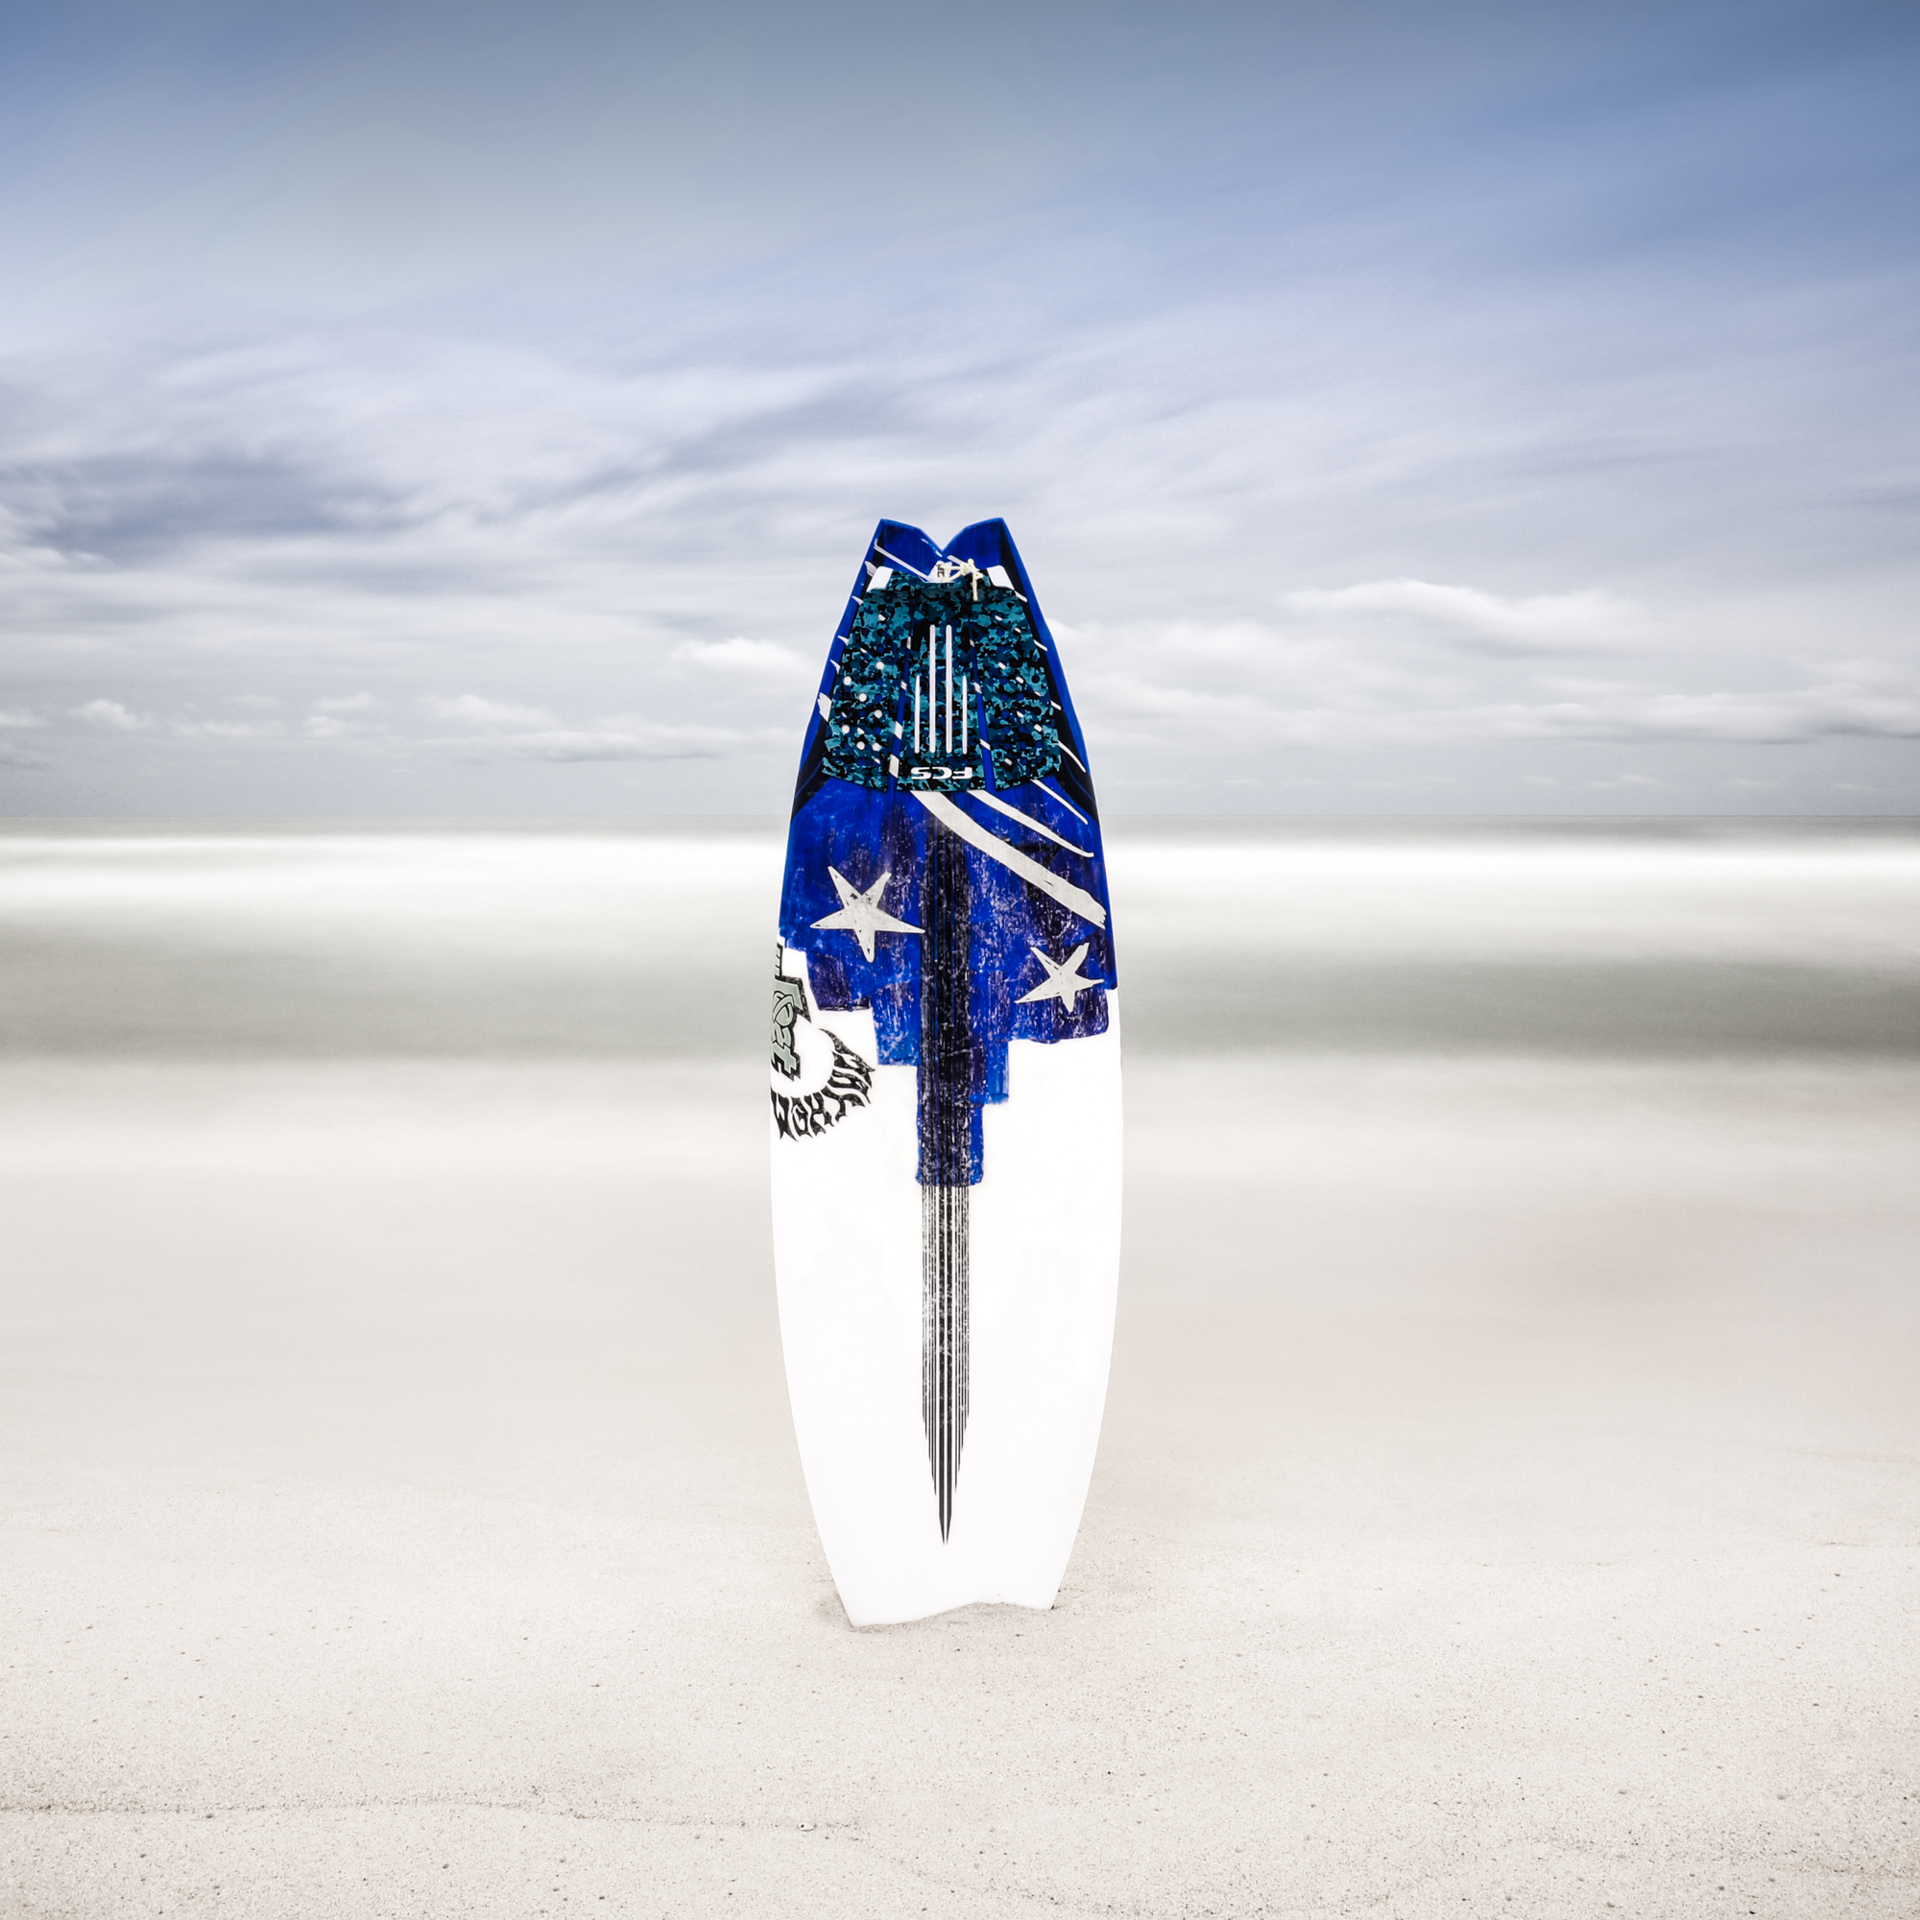 Surfboard at White Sands/Color by Keith Ramsdell